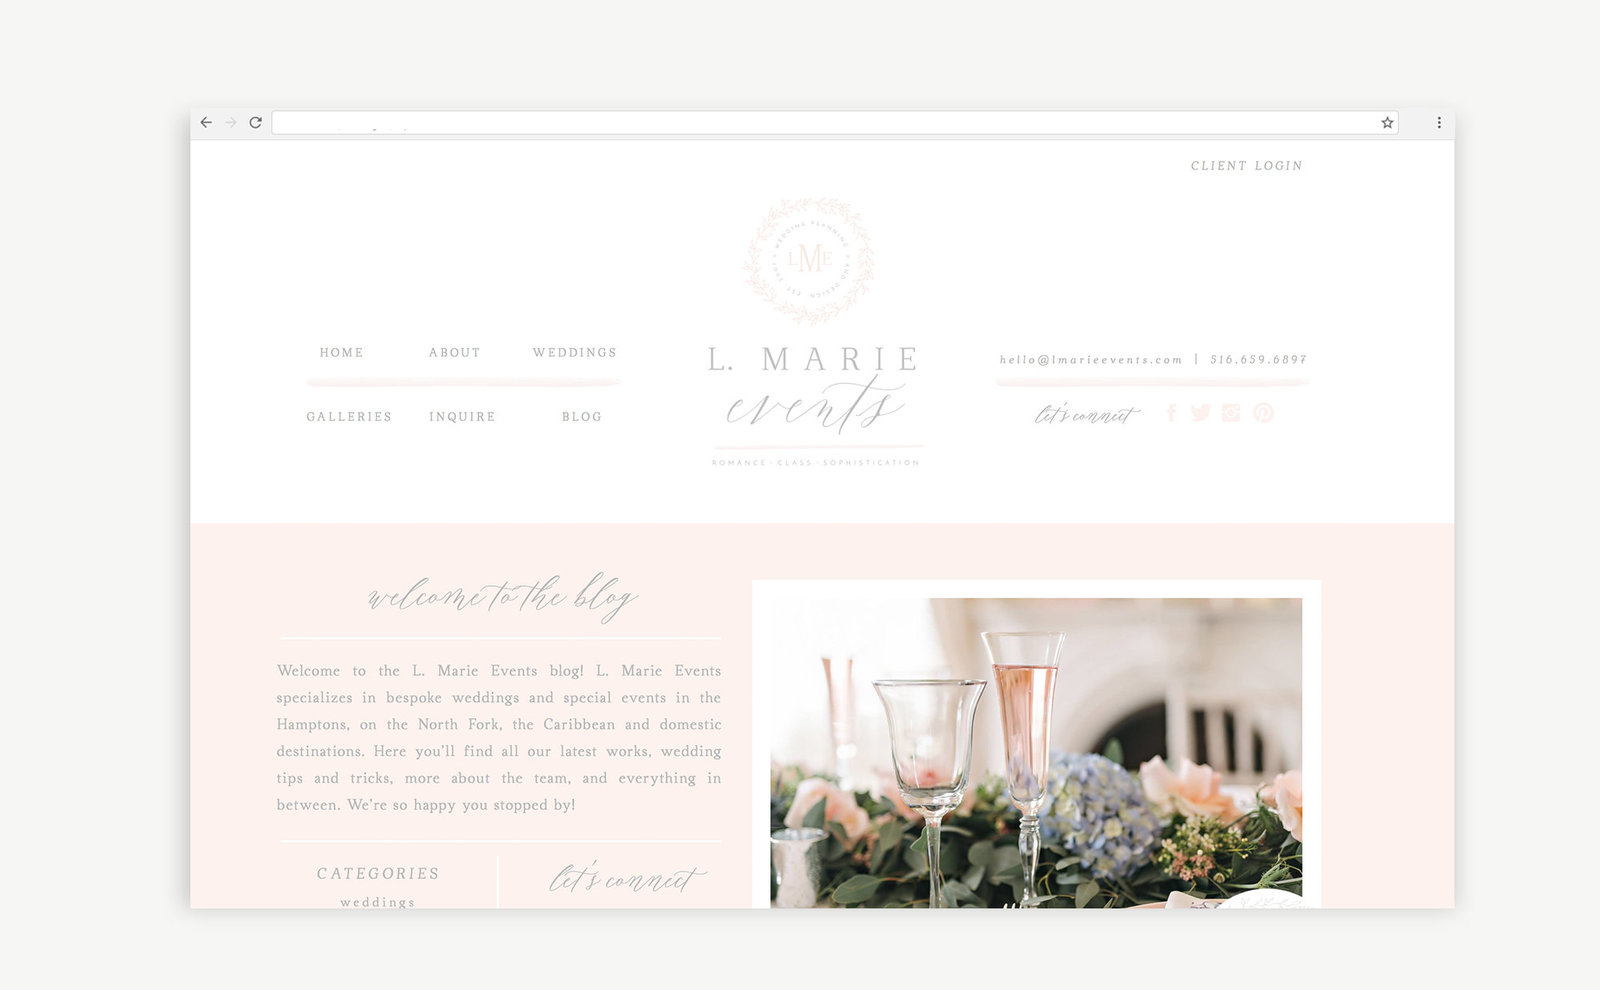 long-island-wedding-planner-website-showit5-06